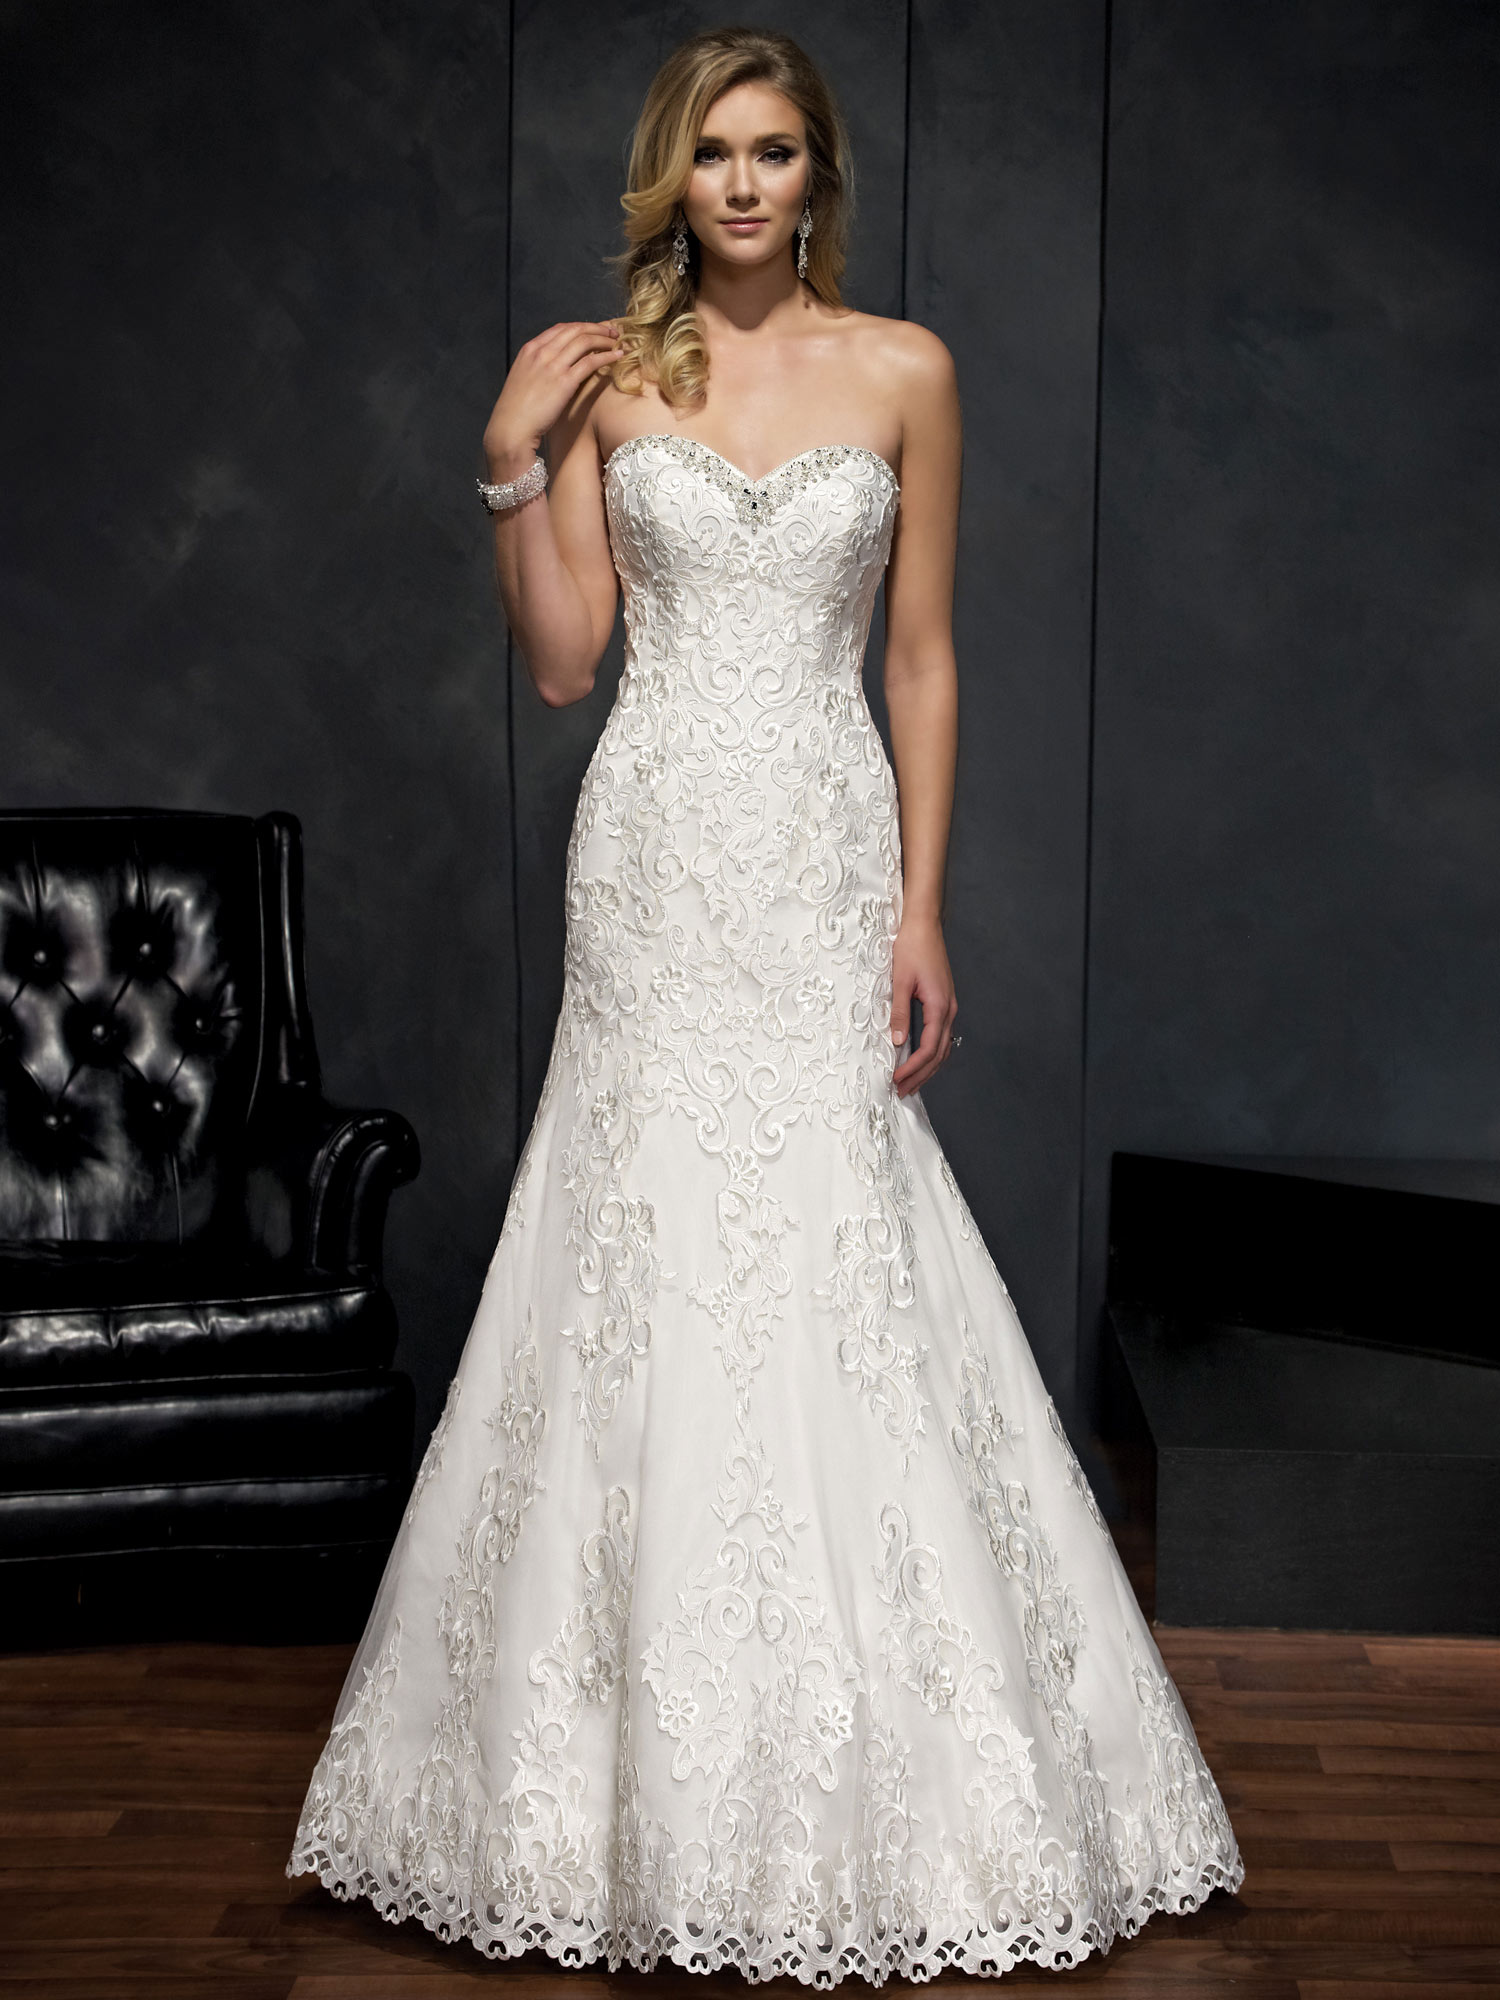 jessica mcclintock wedding dress jessica mcclintock wedding dresses The Best Gowns From Most In Demand Wedding Dress Designers Jessica mc clintock wedding dresses jessica mcclintock